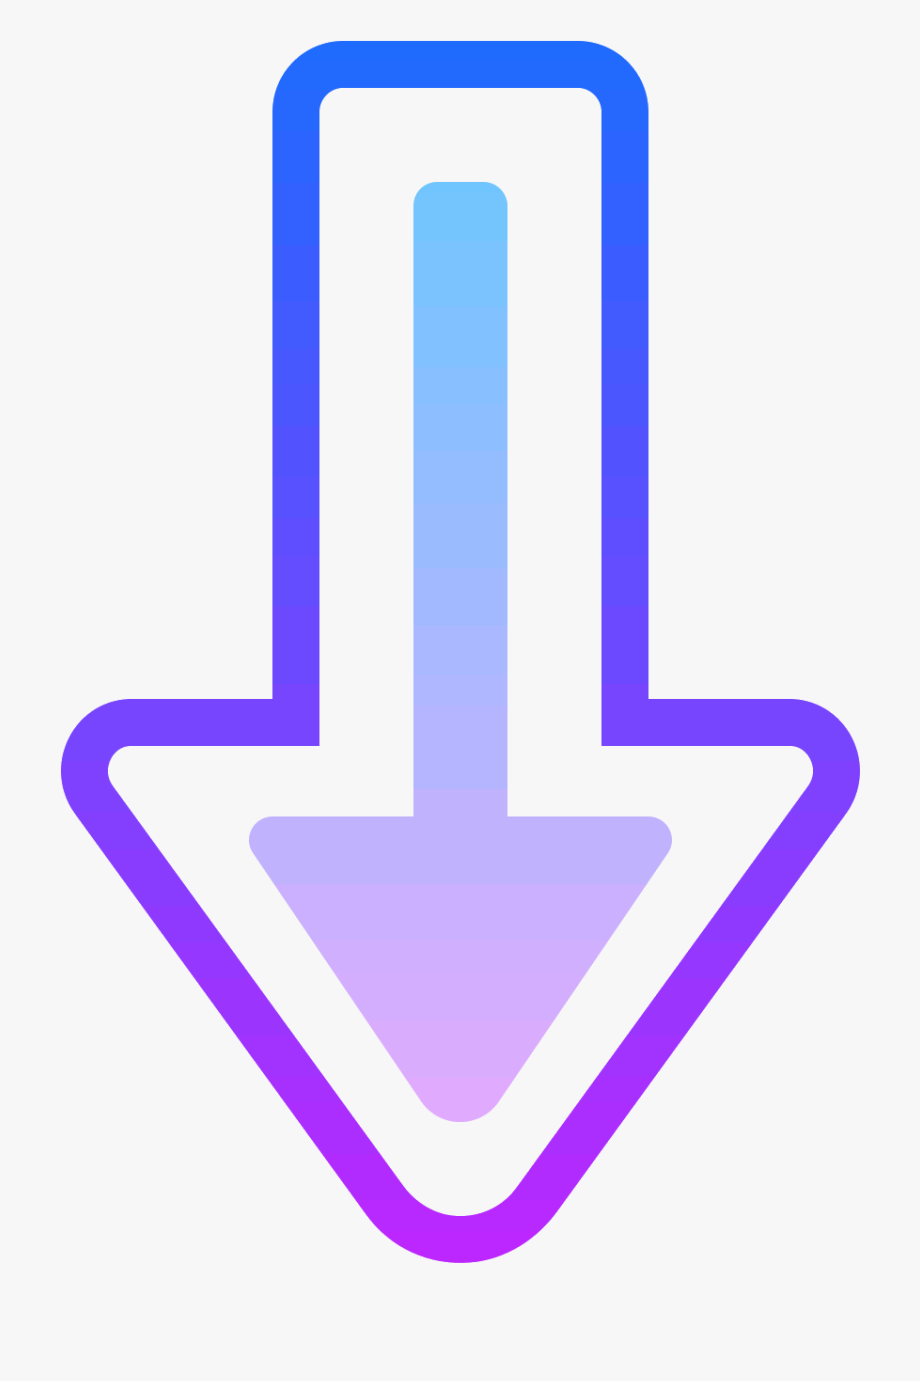 Transparent Arrow Pointing Down Png.